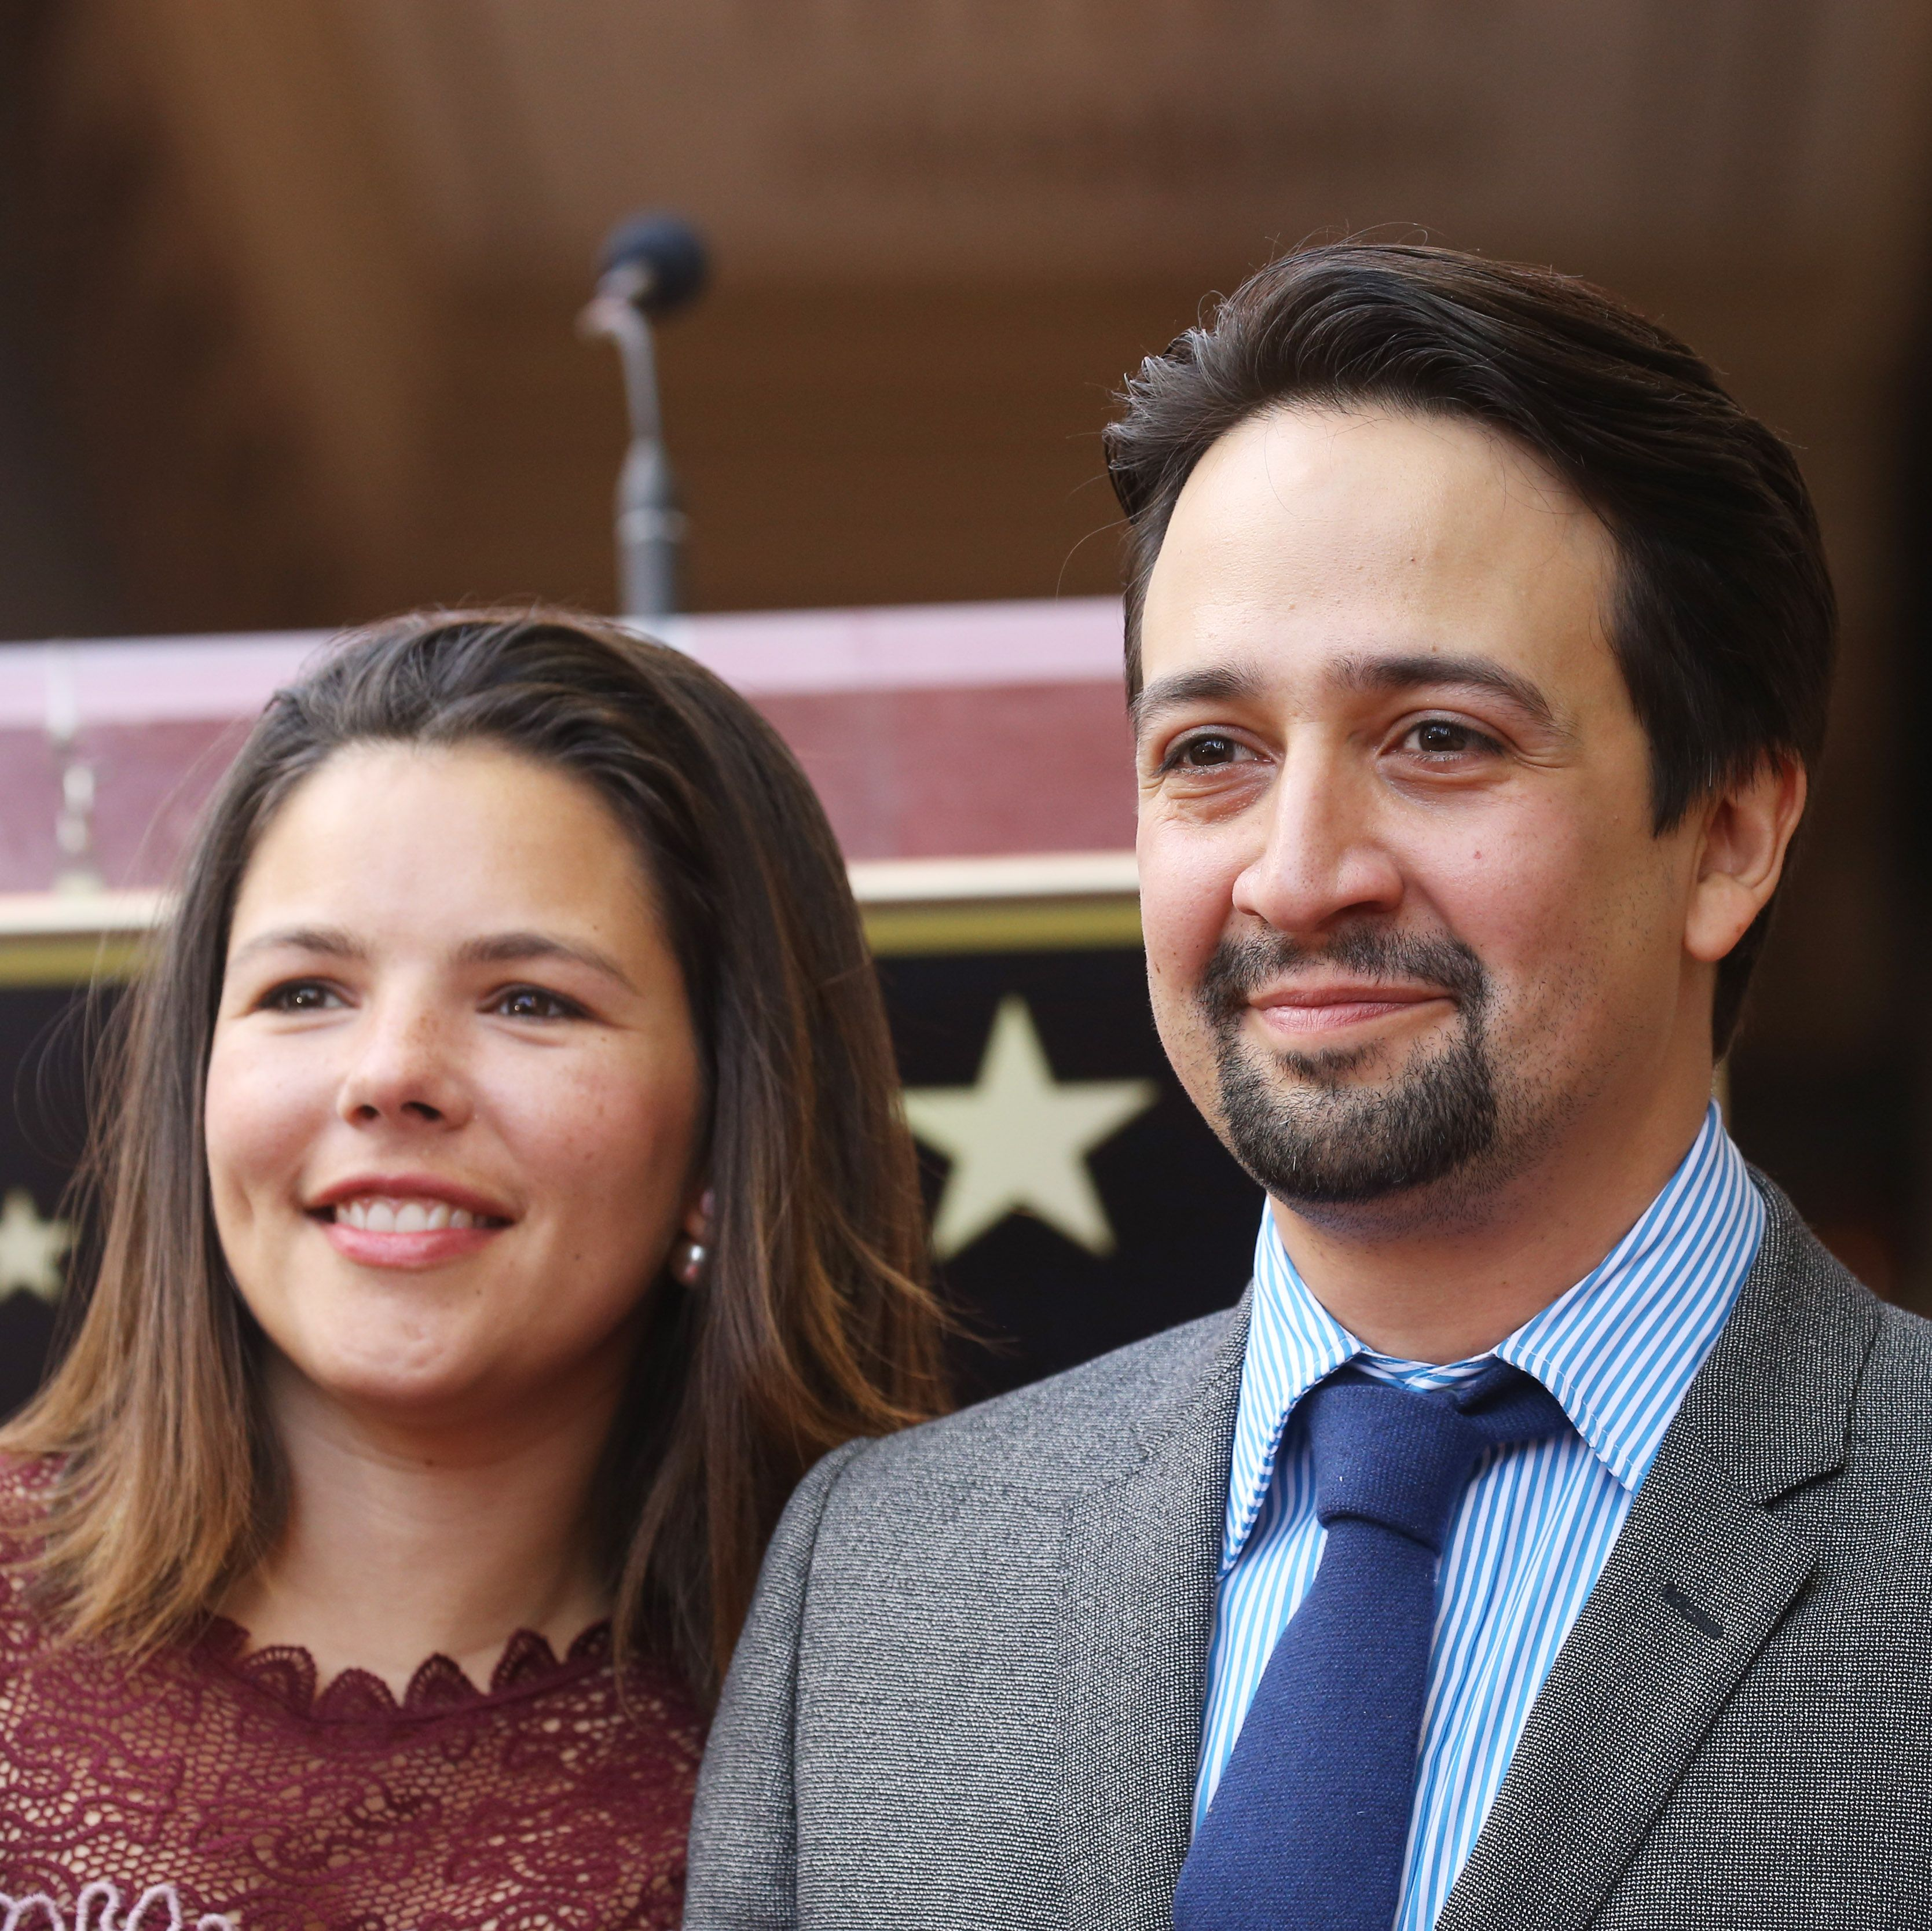 Vanessa Nadal, Lin-Manuel Miranda's Wife, Was Once His High School Crush